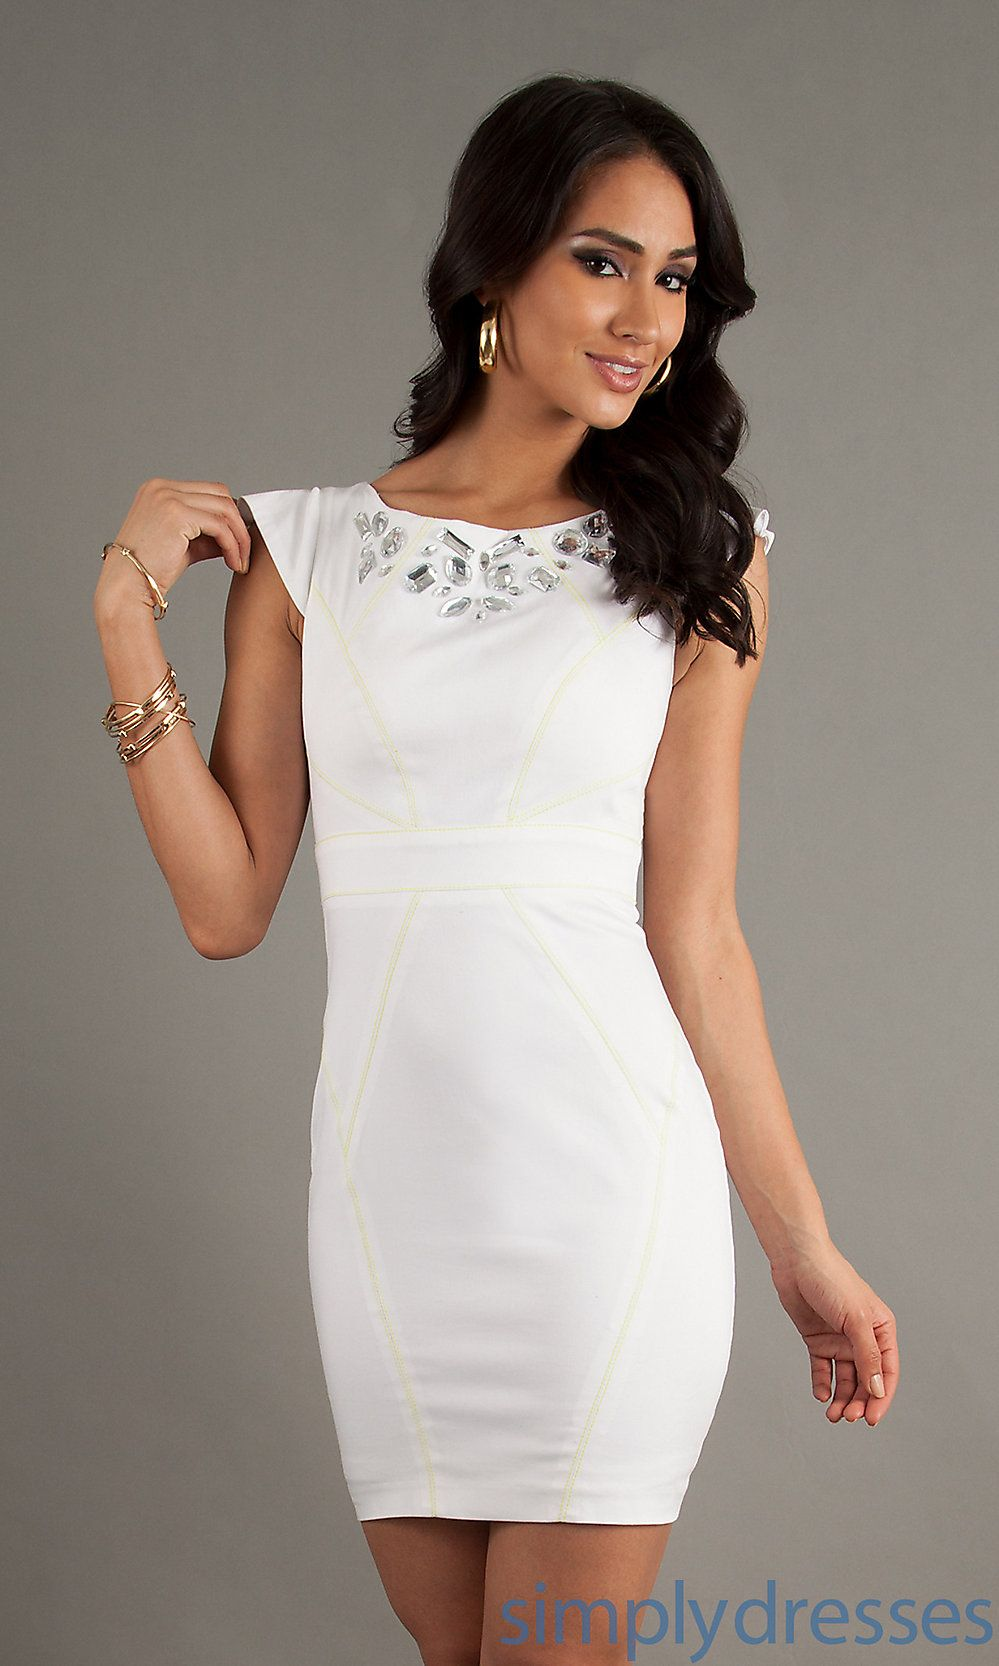 Beautifully Designed Short Ed White Dress Are Available For At Our E